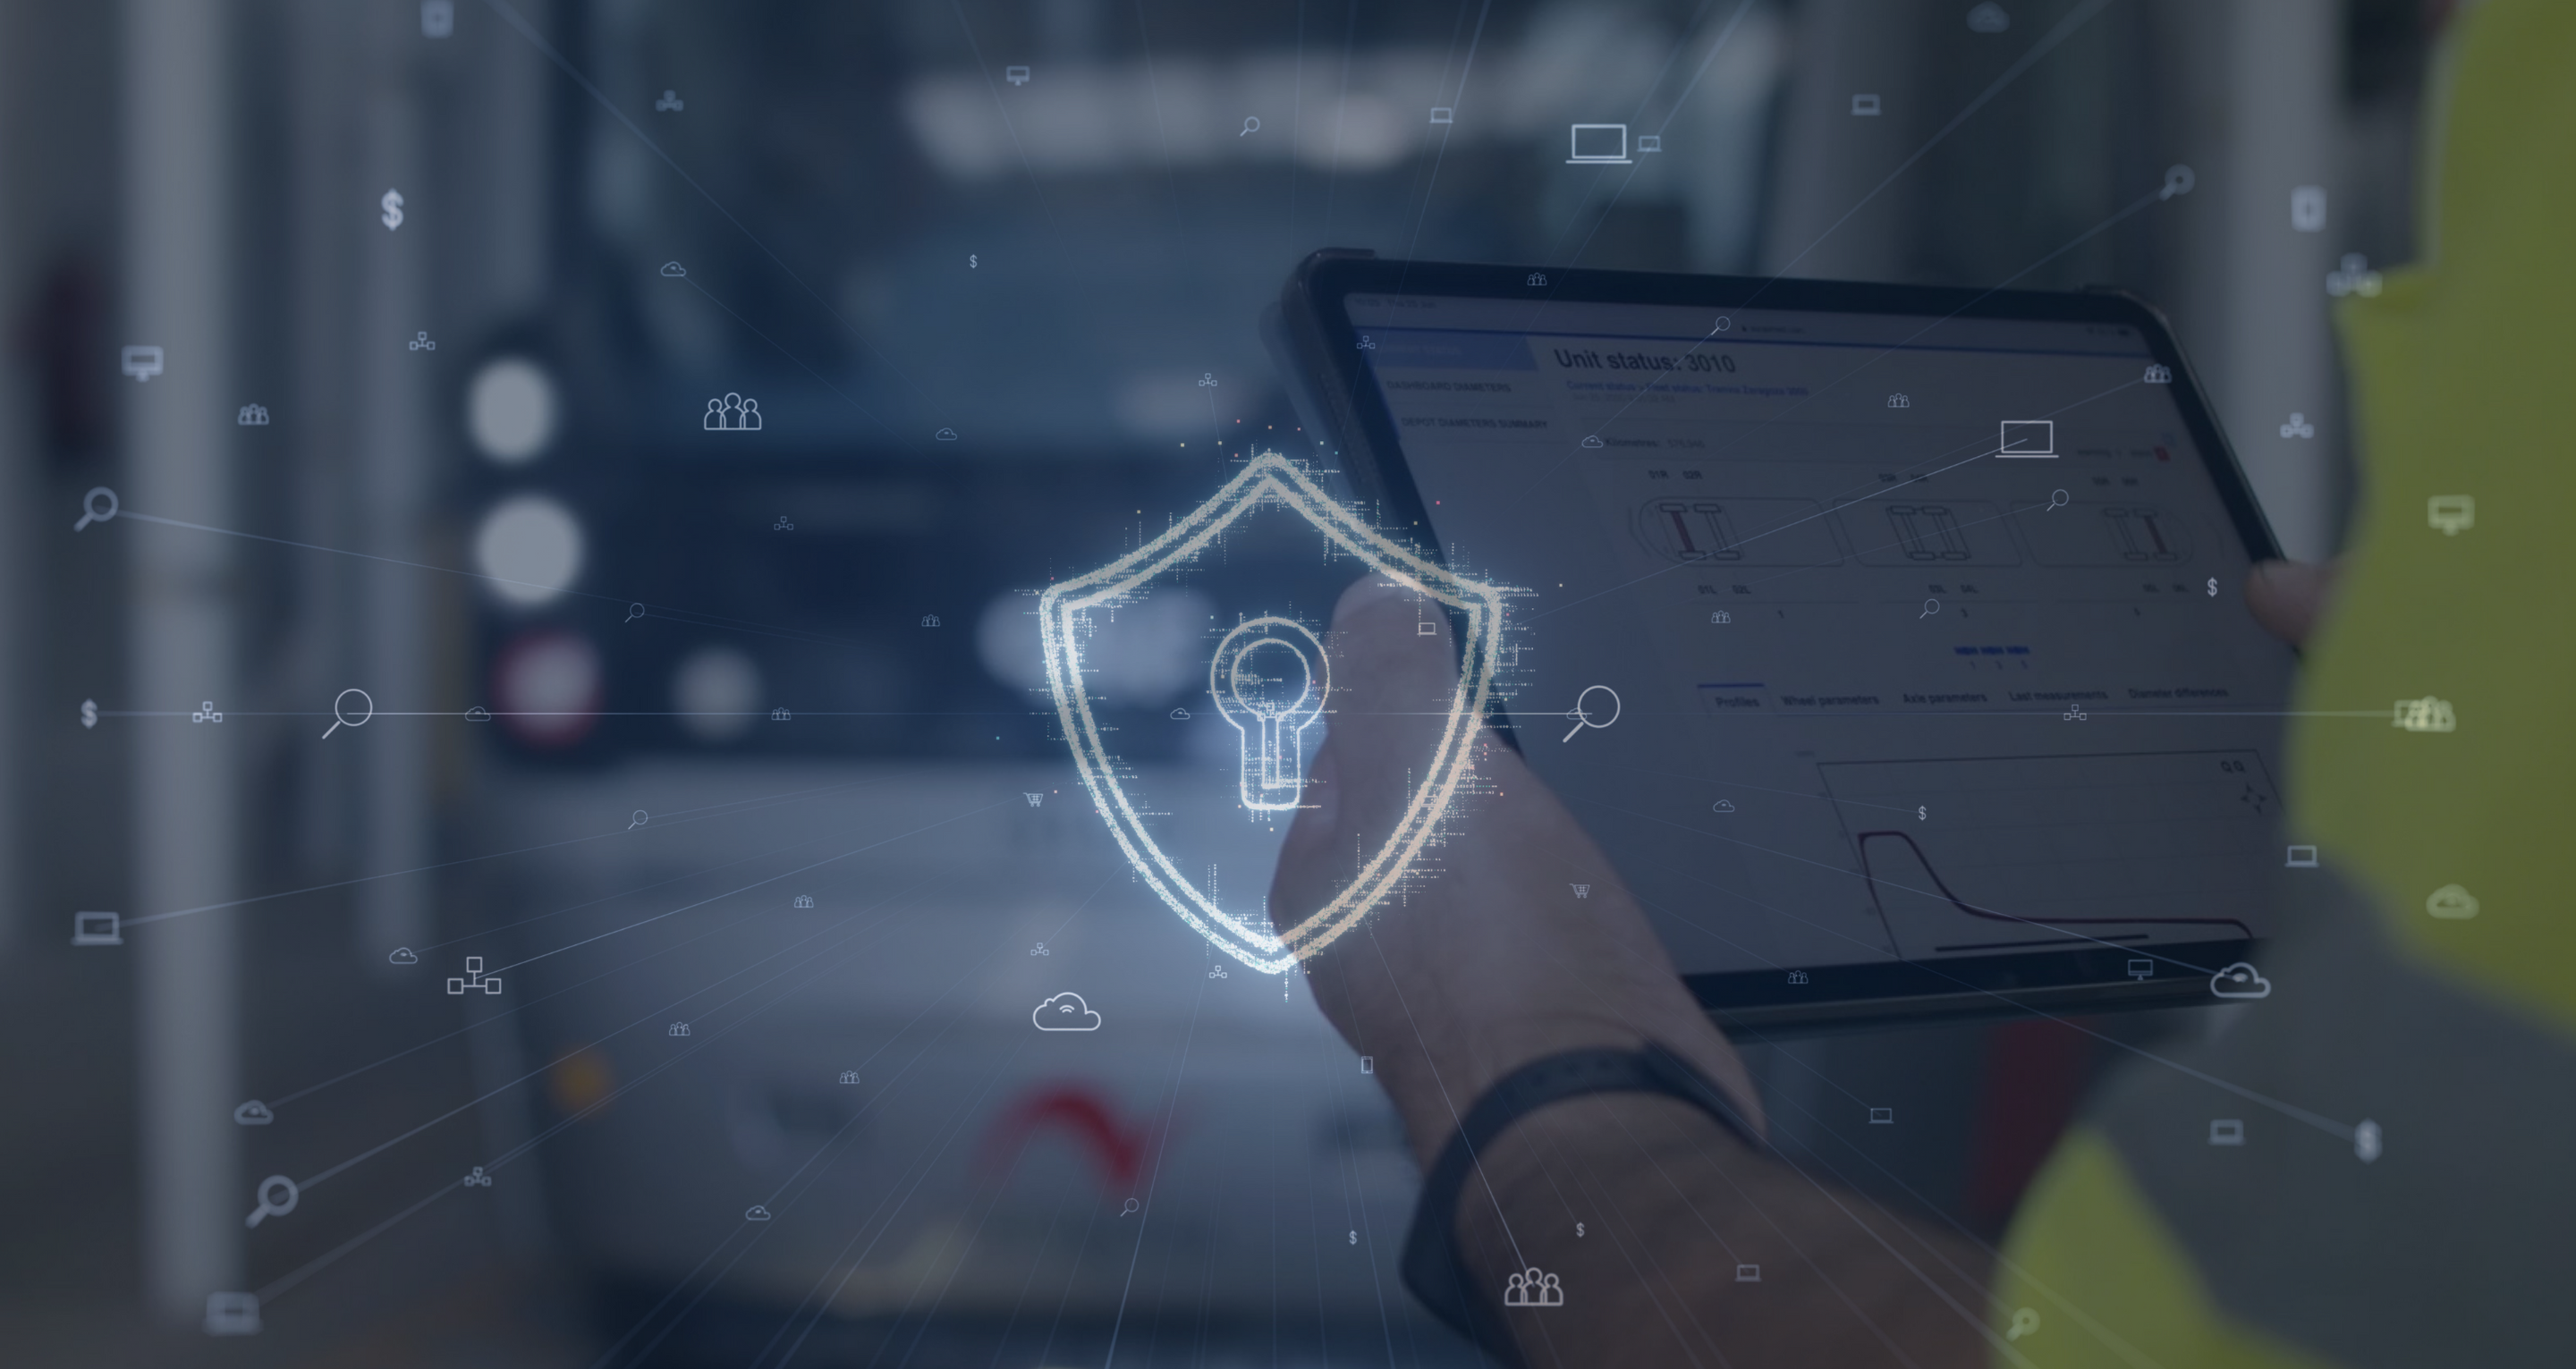 Cybersecurity: LeadMind raises the requirements and commitment to data security to maximum levels